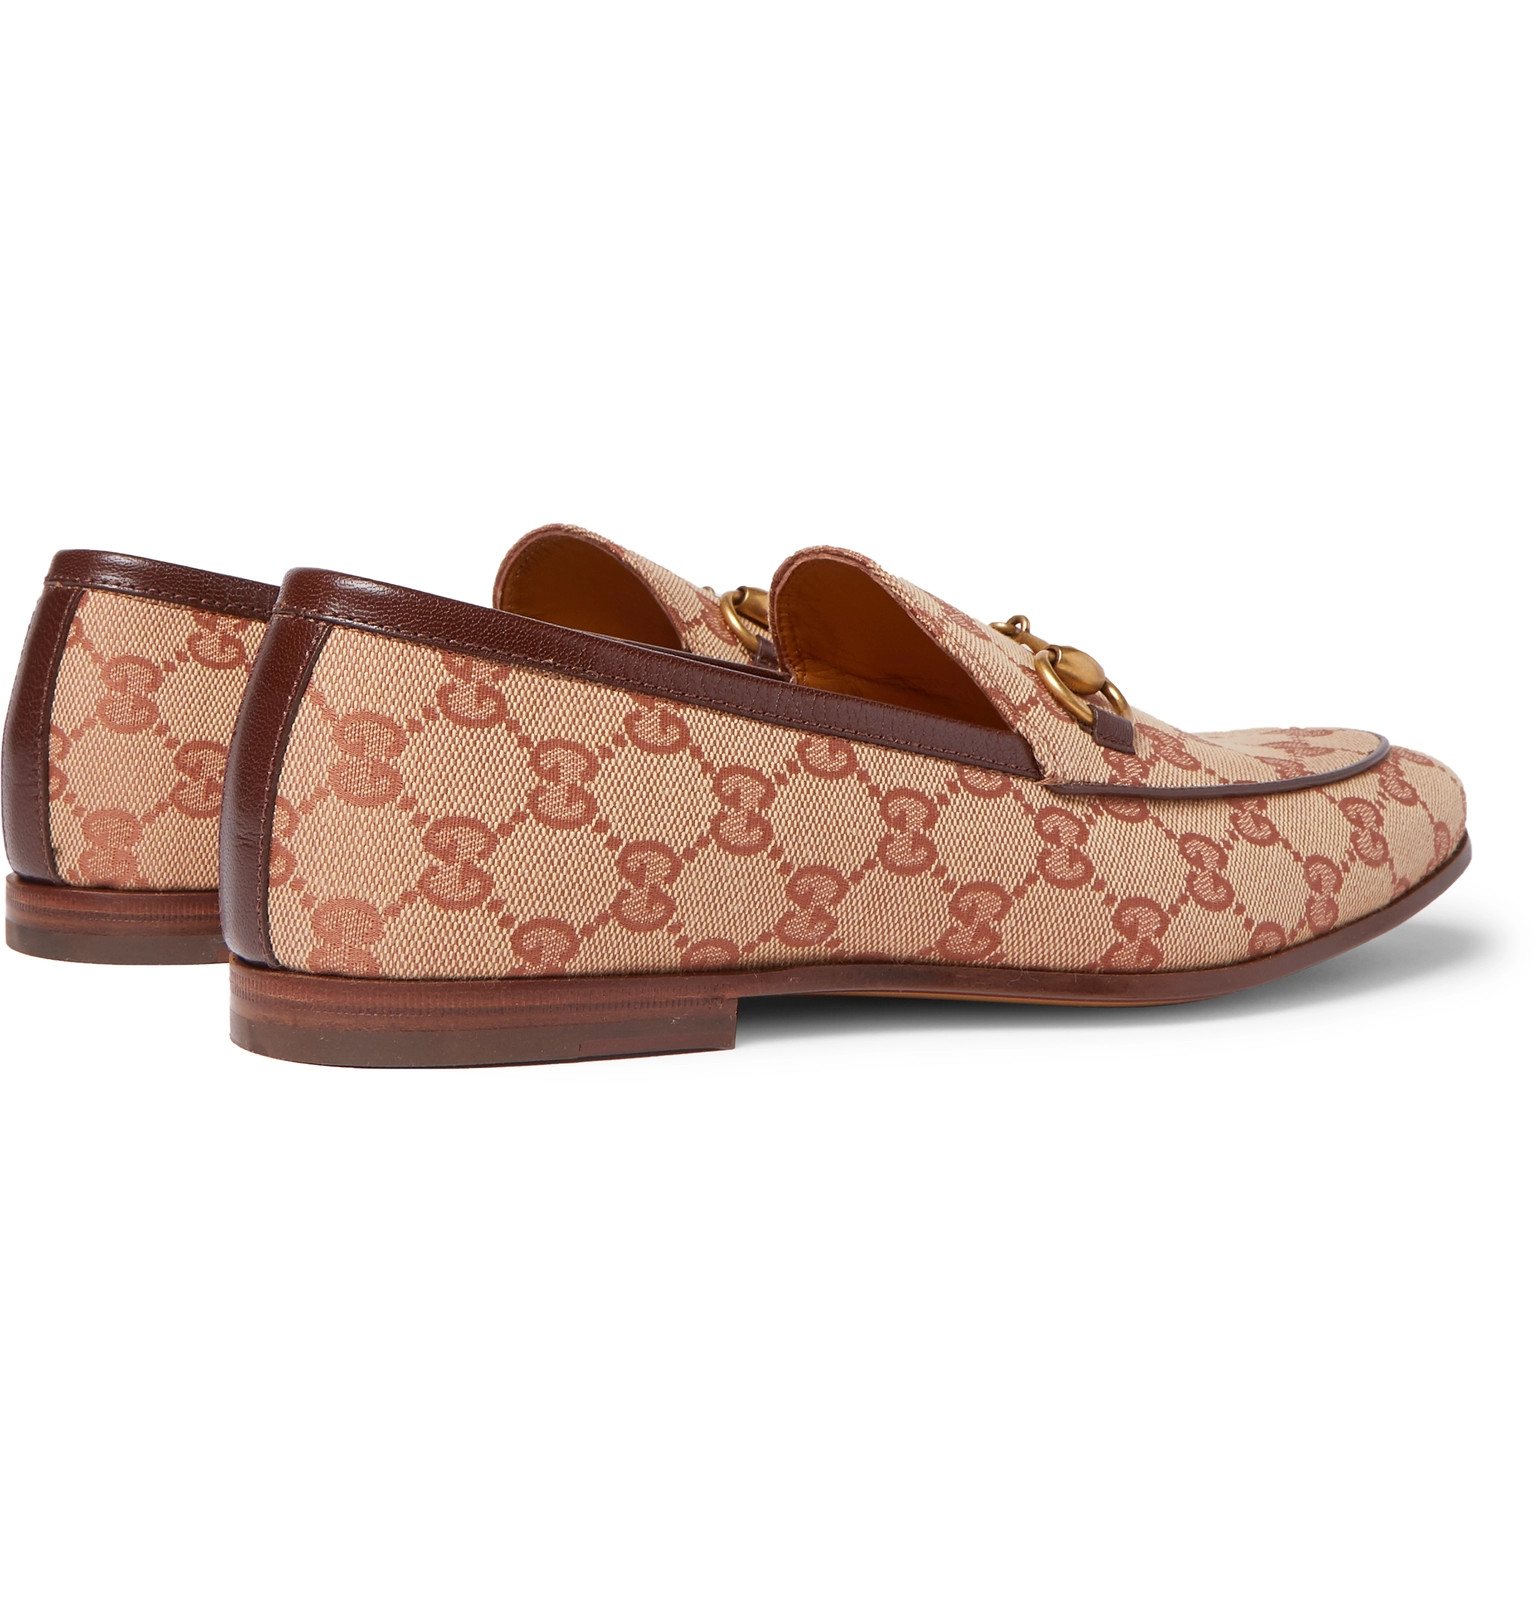 2d5008fbd Gucci - Jordaan Horsebit Leather-Trimmed Monogrammed Canvas Loafers